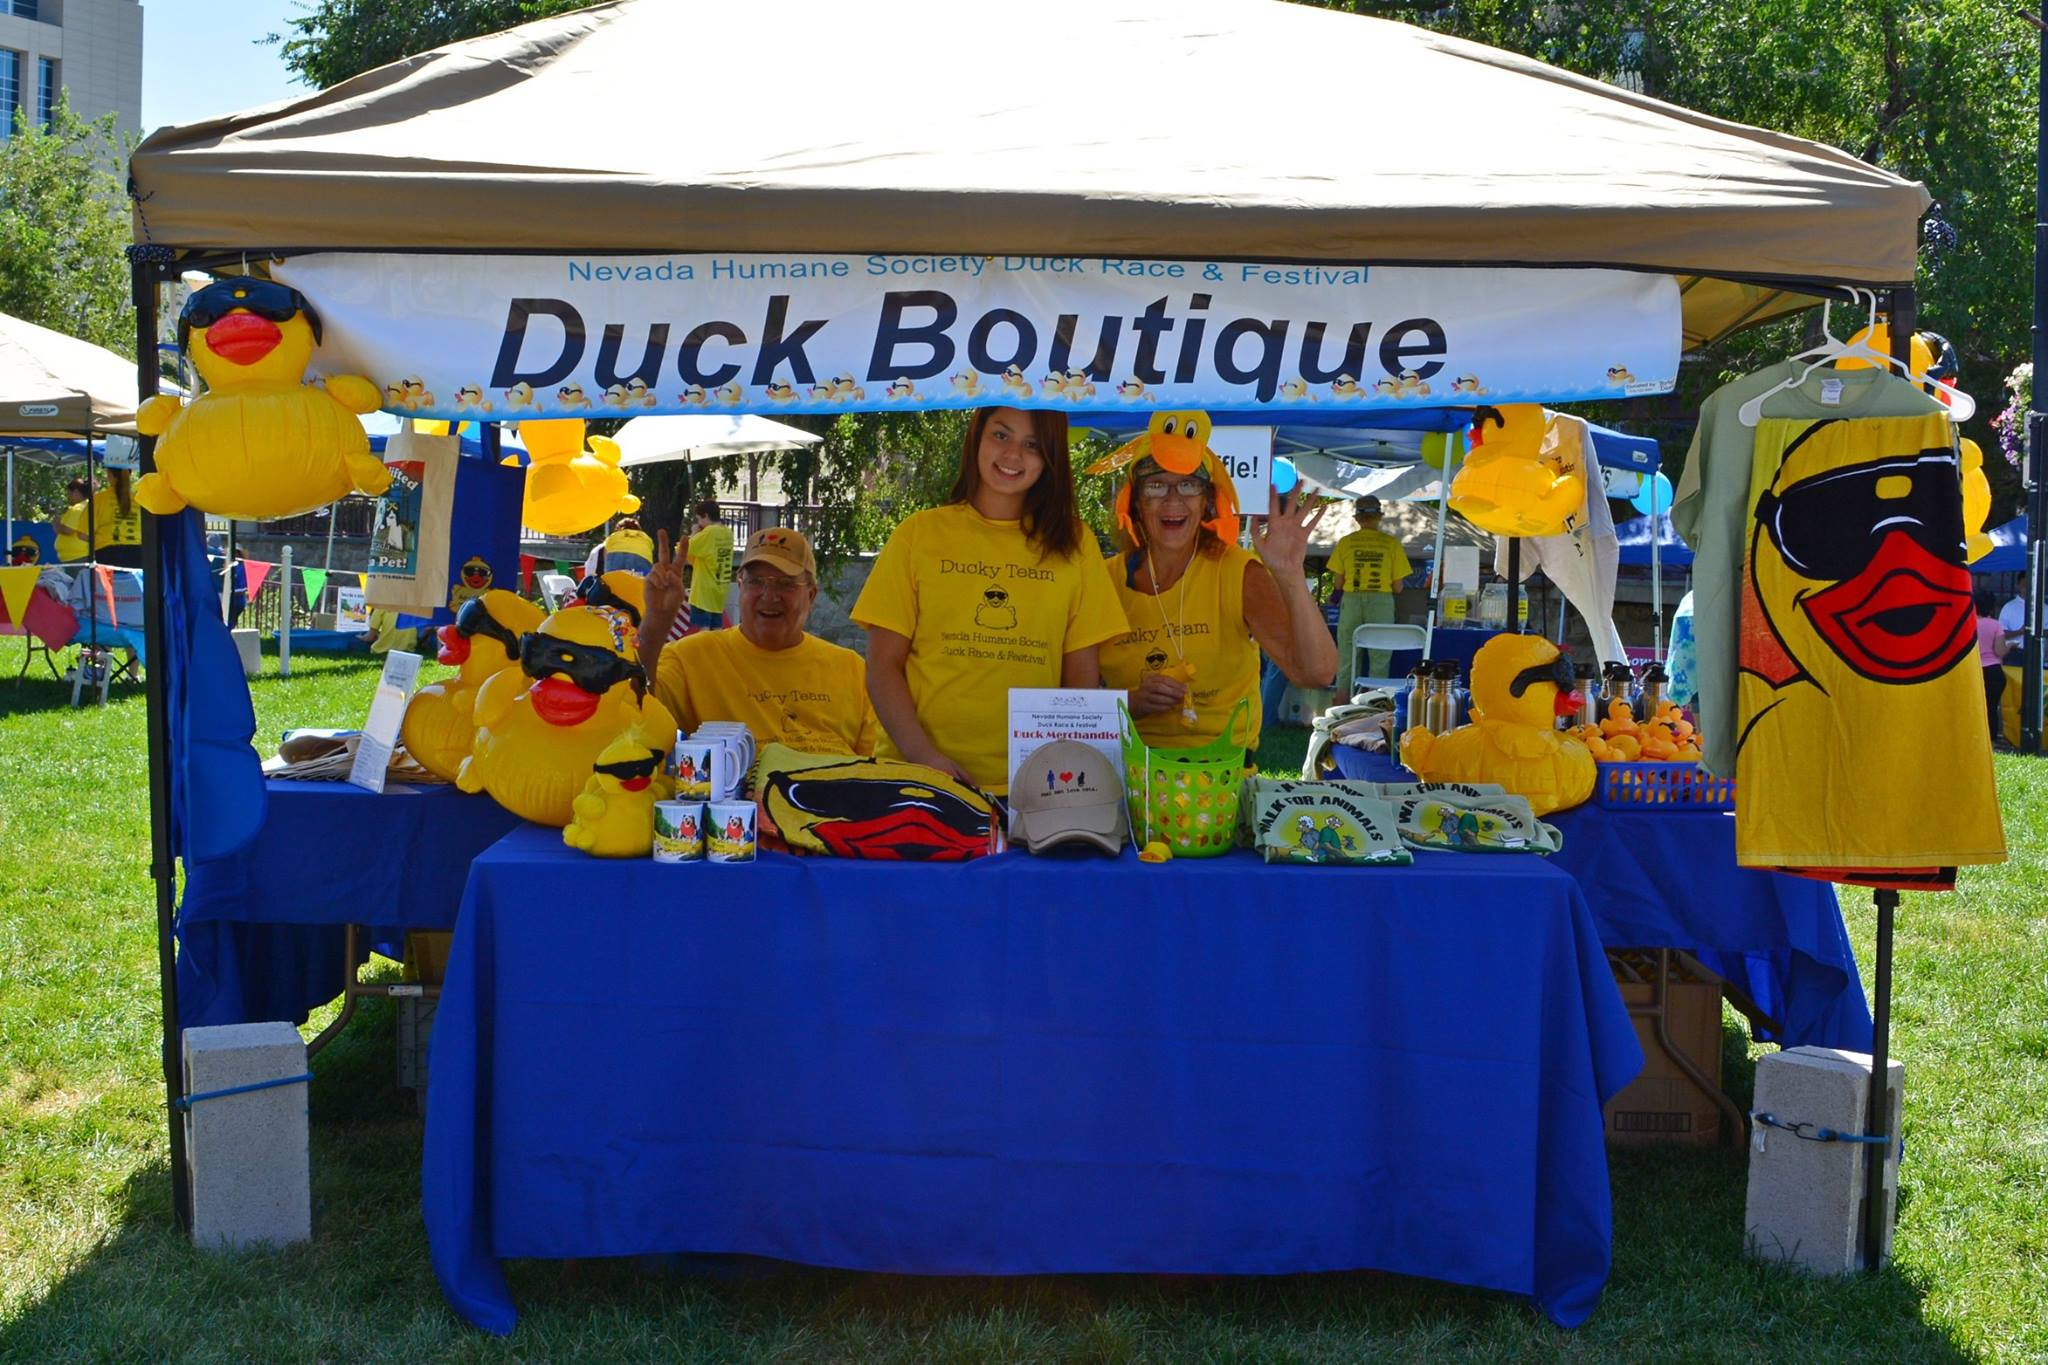 Duck race merchandise being used in a duck boutique